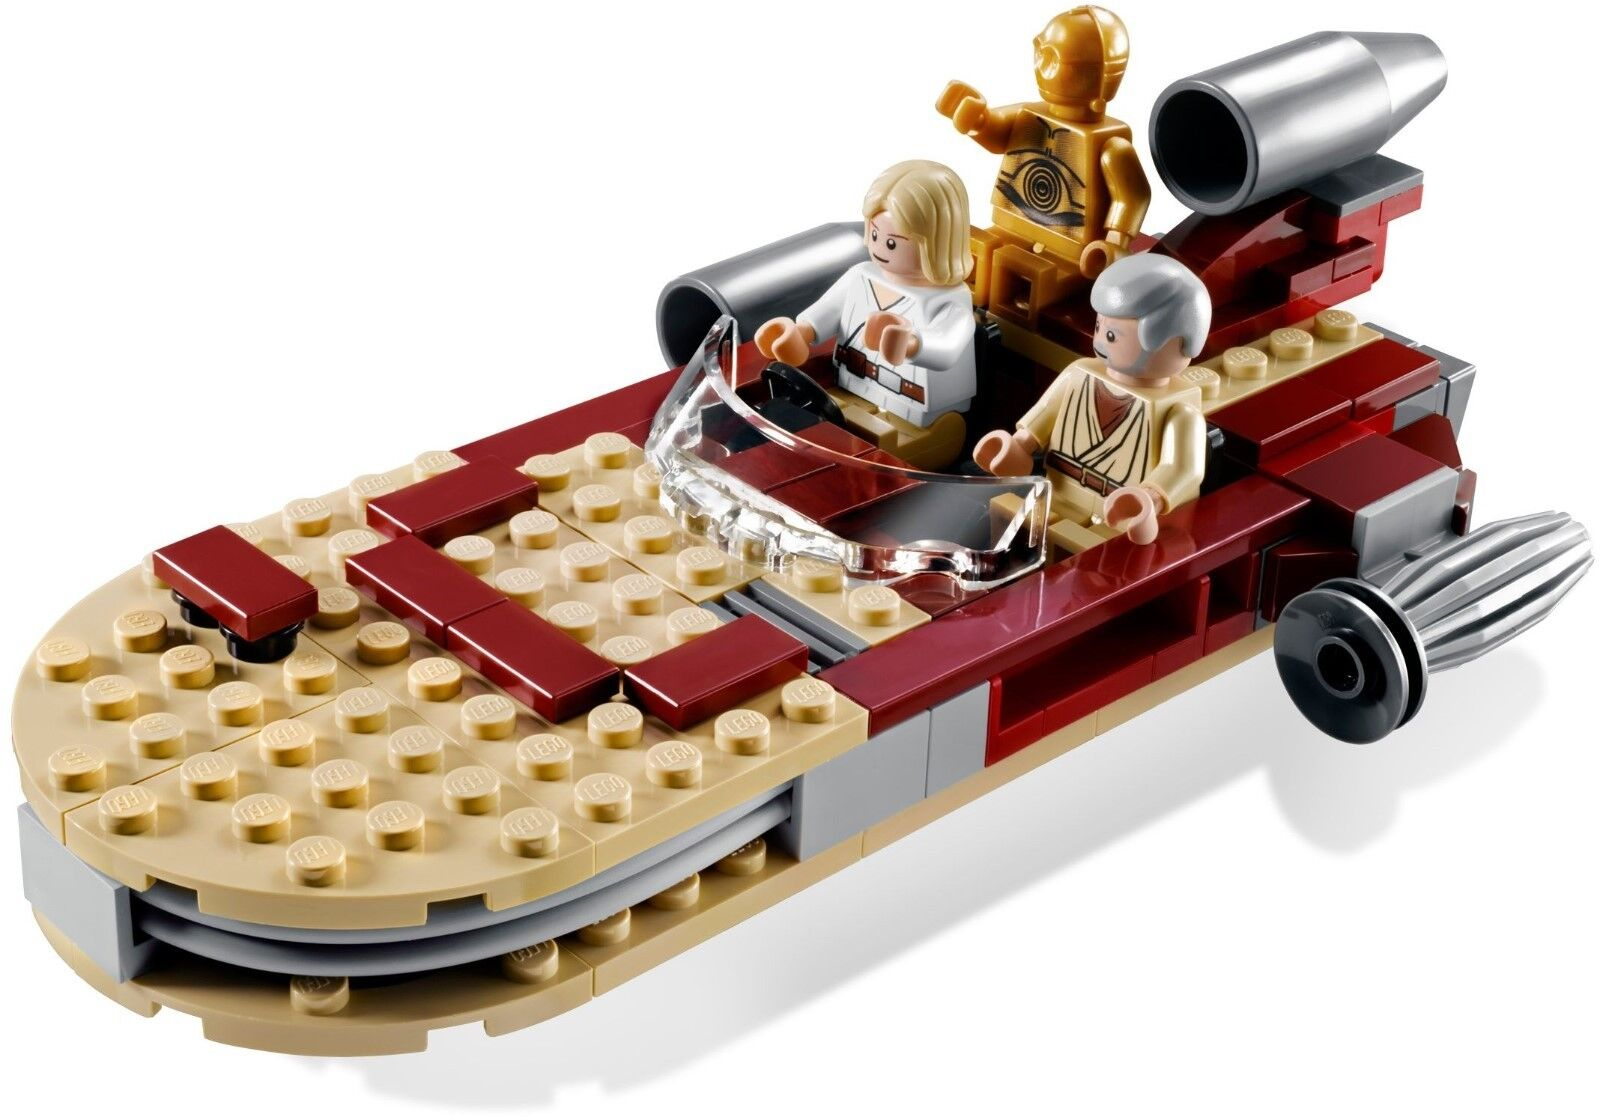 Star Wars LEGO  LUKE'S LANDSPEEDER  8092 Original Original Original Trilogy Rare (2010) Sealed Box 6cdb8c